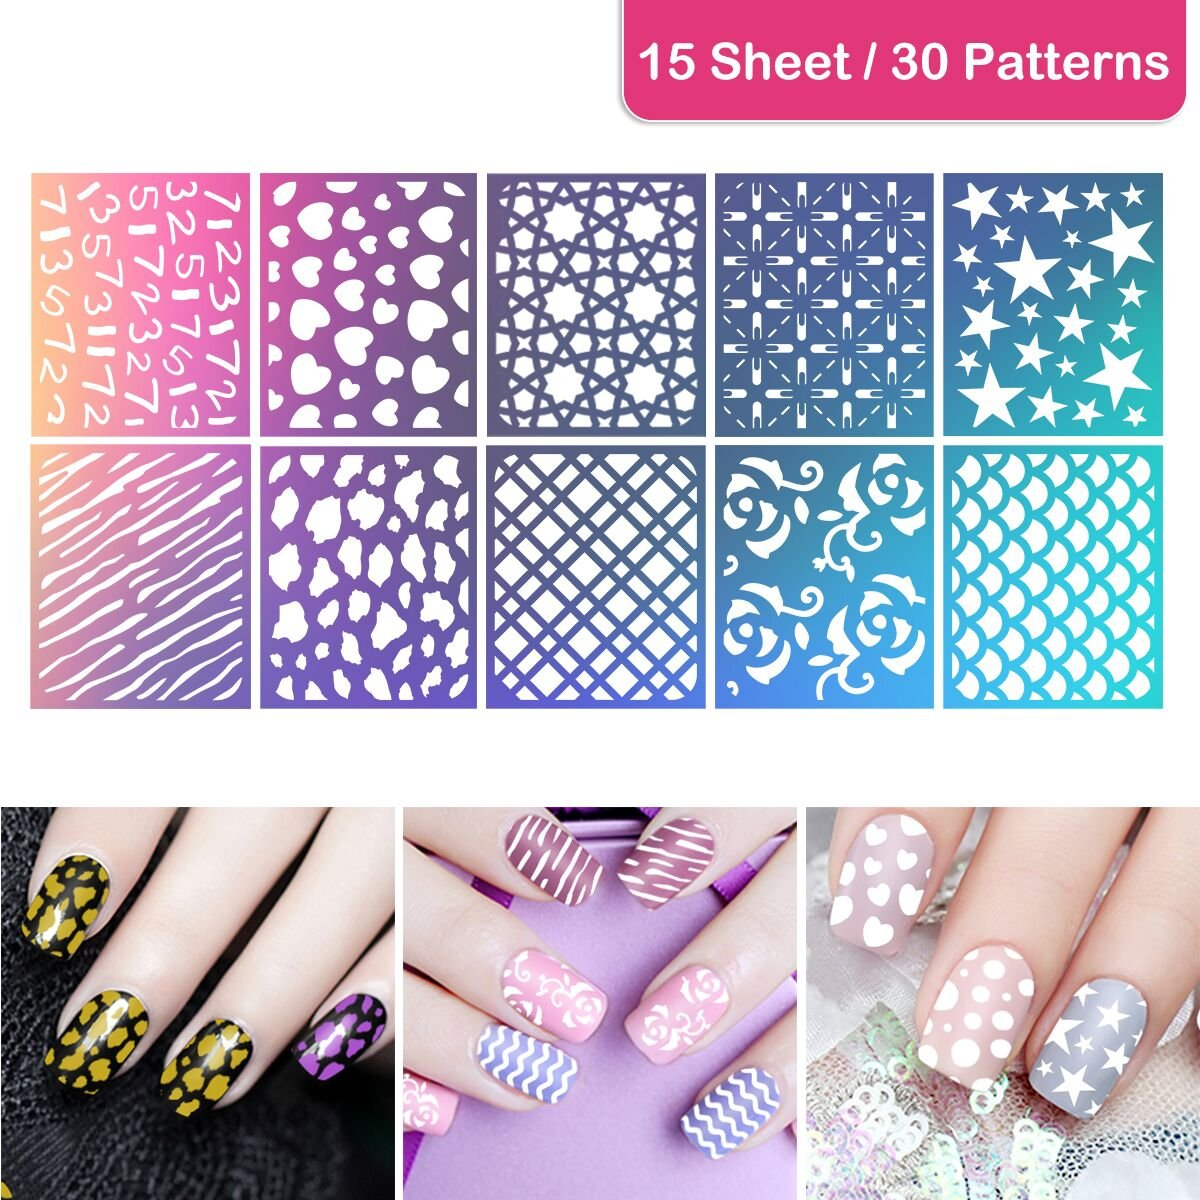 Etereauty nail art stamping kit with 10 manicure plate set nair etereauty nail art stamping kit with 10 manicure plate set nair art polish stamper and scraper tool prinsesfo Choice Image